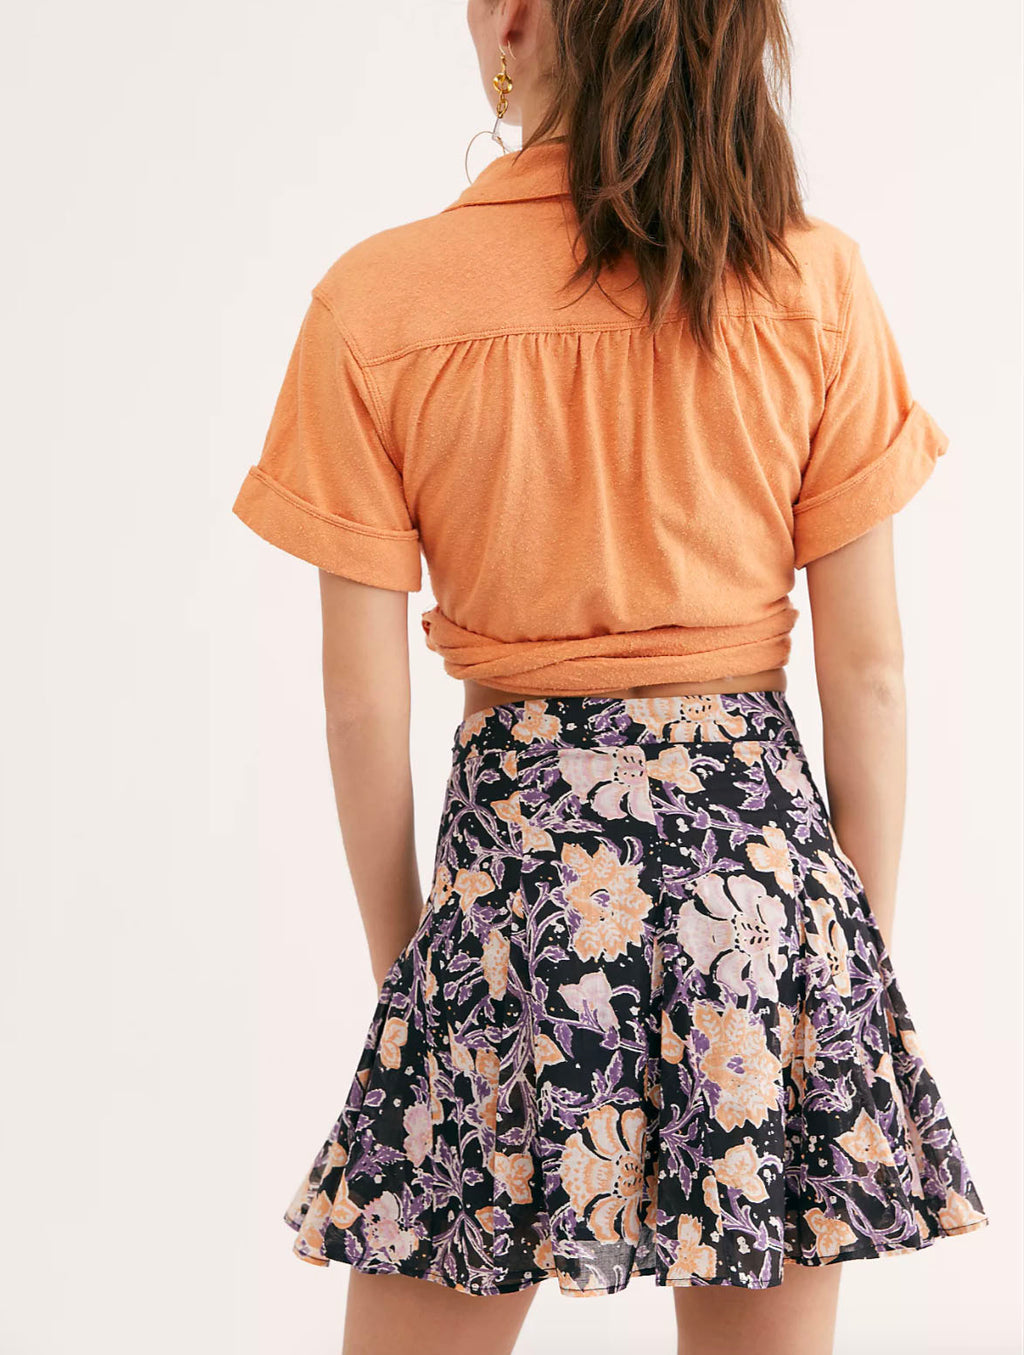 Free People Island Godet Skirt in Washed Black